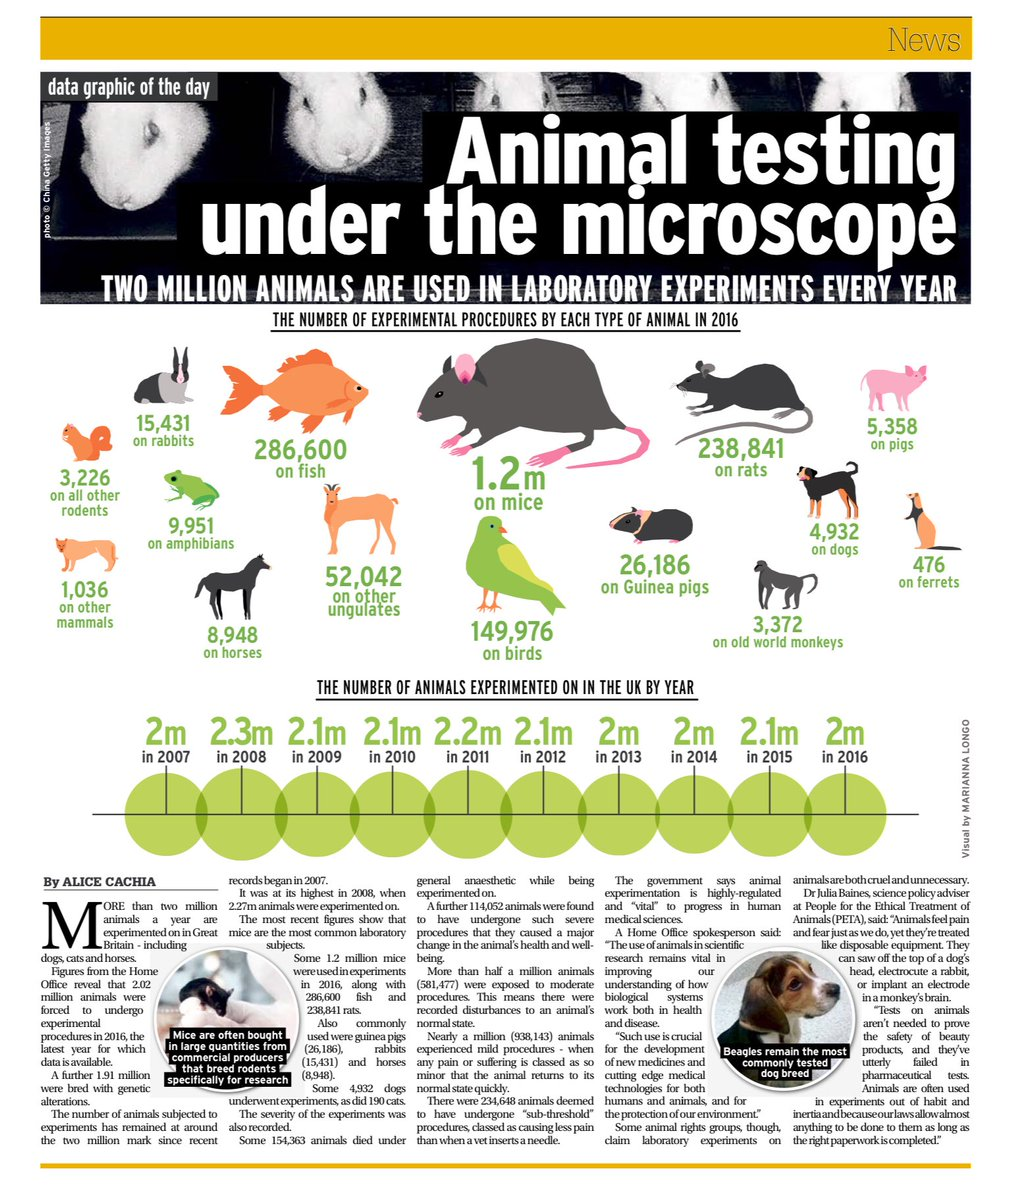 ethics of animal testing for medical However, a full 70 to 75 percent of drugs approved by the food and drug administration for clinical trials based on promising results in animal tests, ultimately prove unsafe or ineffective for humans 2 even limited clinical trials cannot reveal the full range of drug risks.